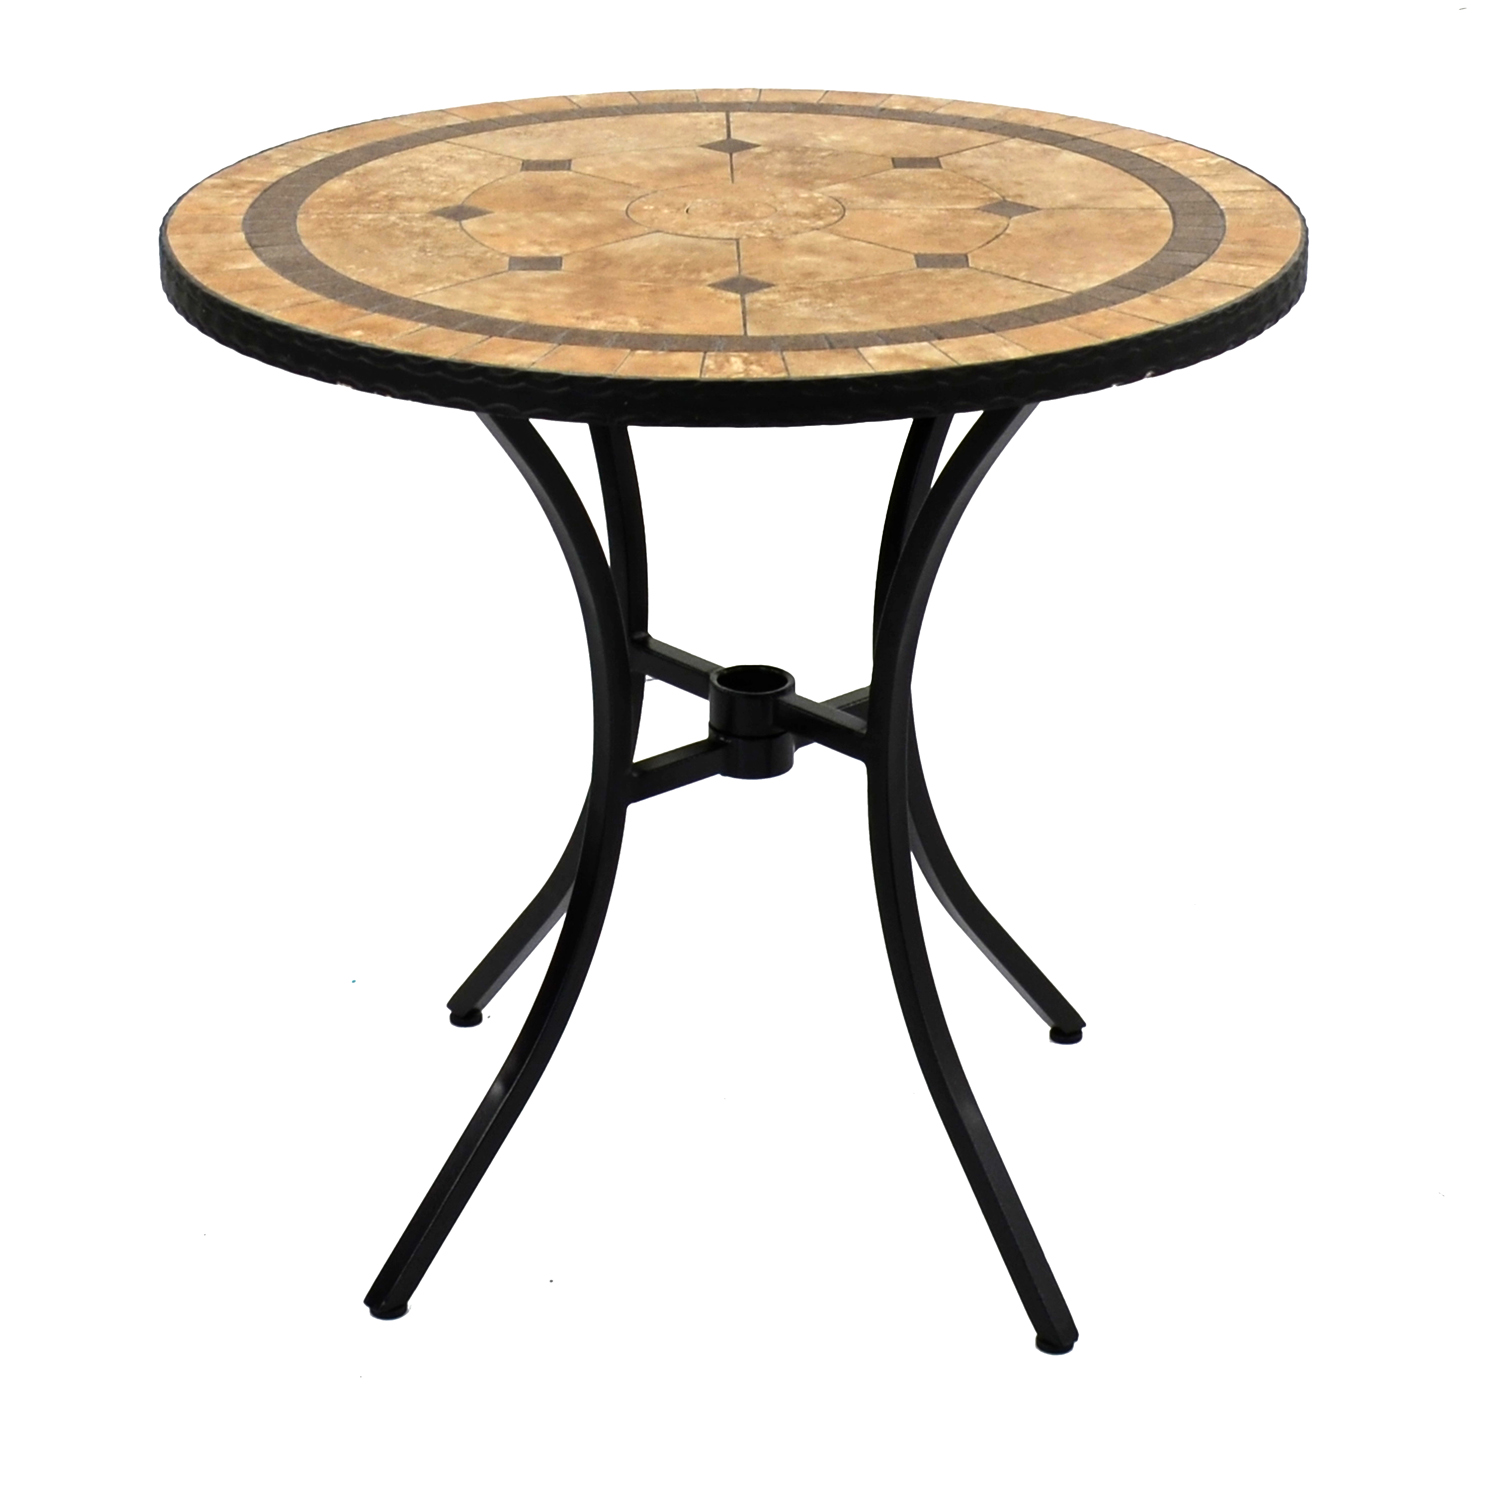 RICHMOND 76CM BISTRO TABLE PROFILE